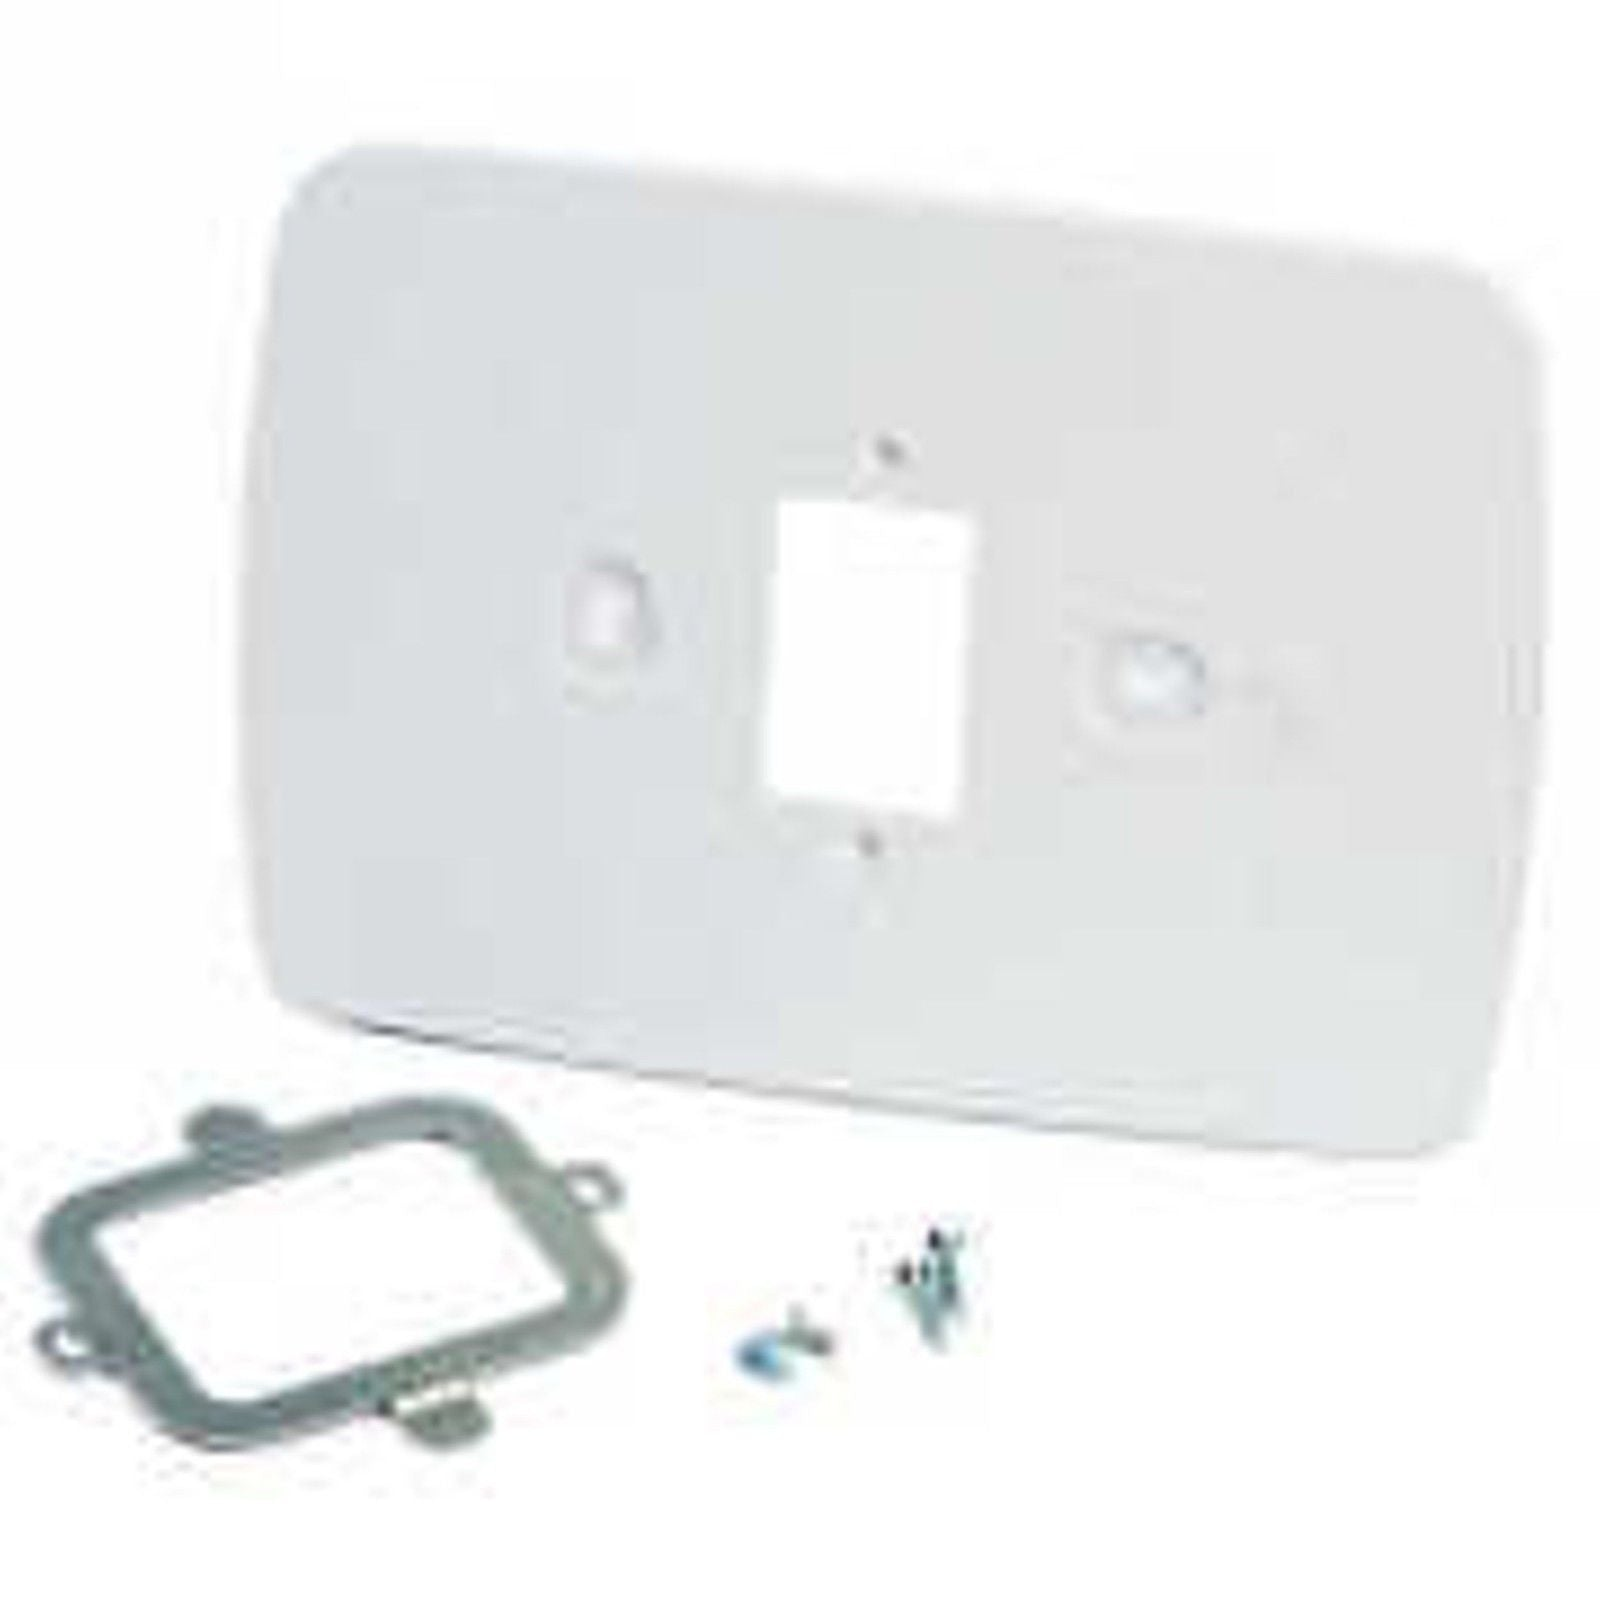 Honeywell Coverplates for Prestige THX 50028399-001 (QTY. 2)